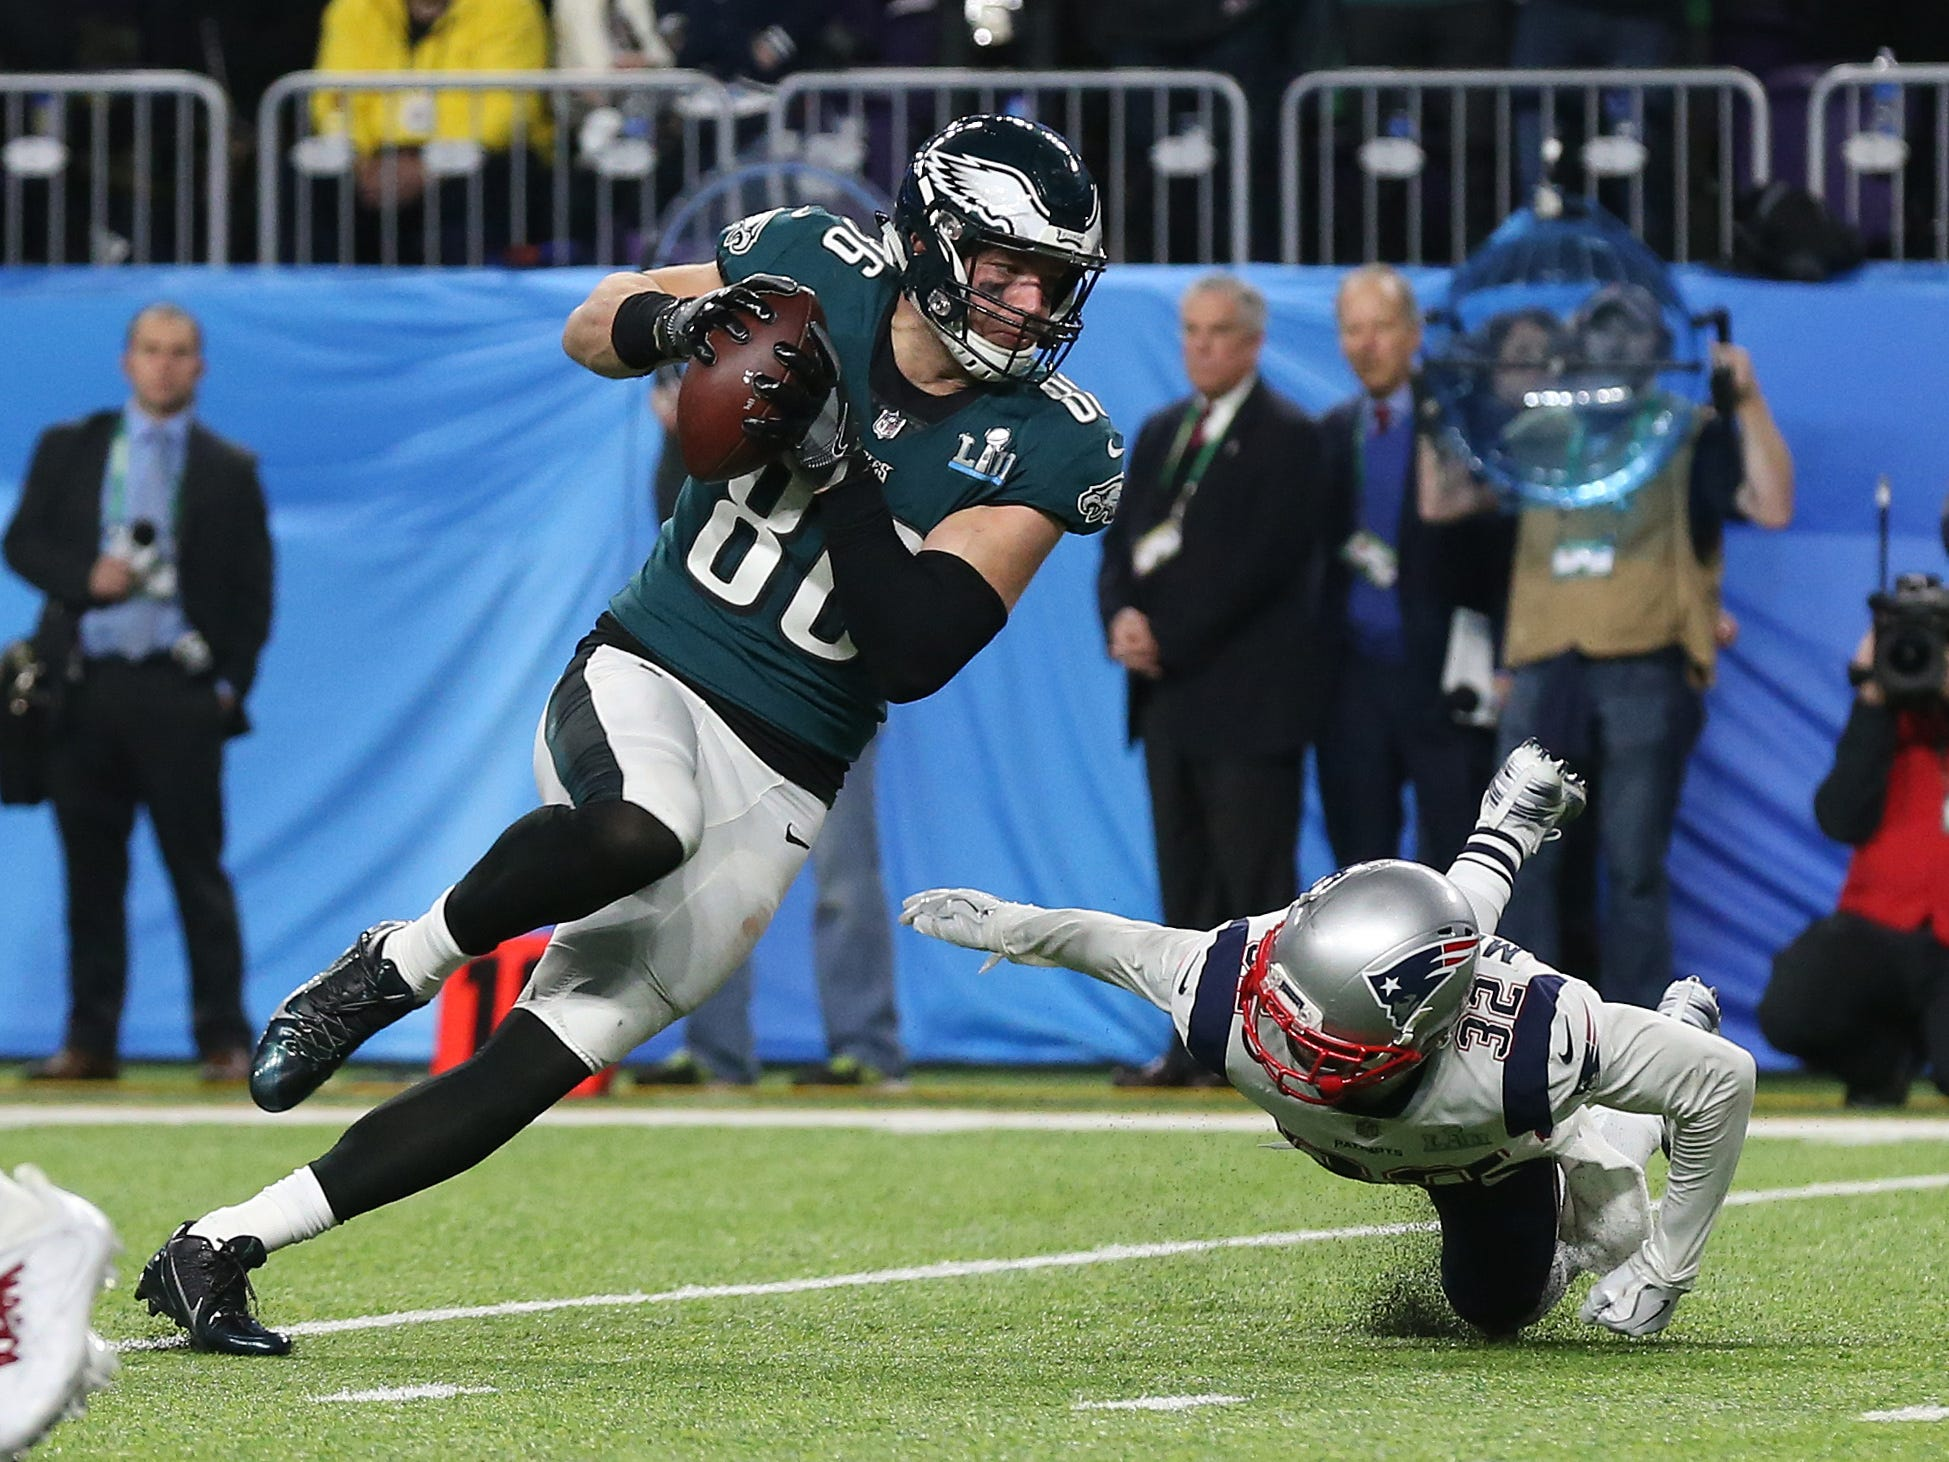 No. 38: Zach Ertz, TE, Eagles